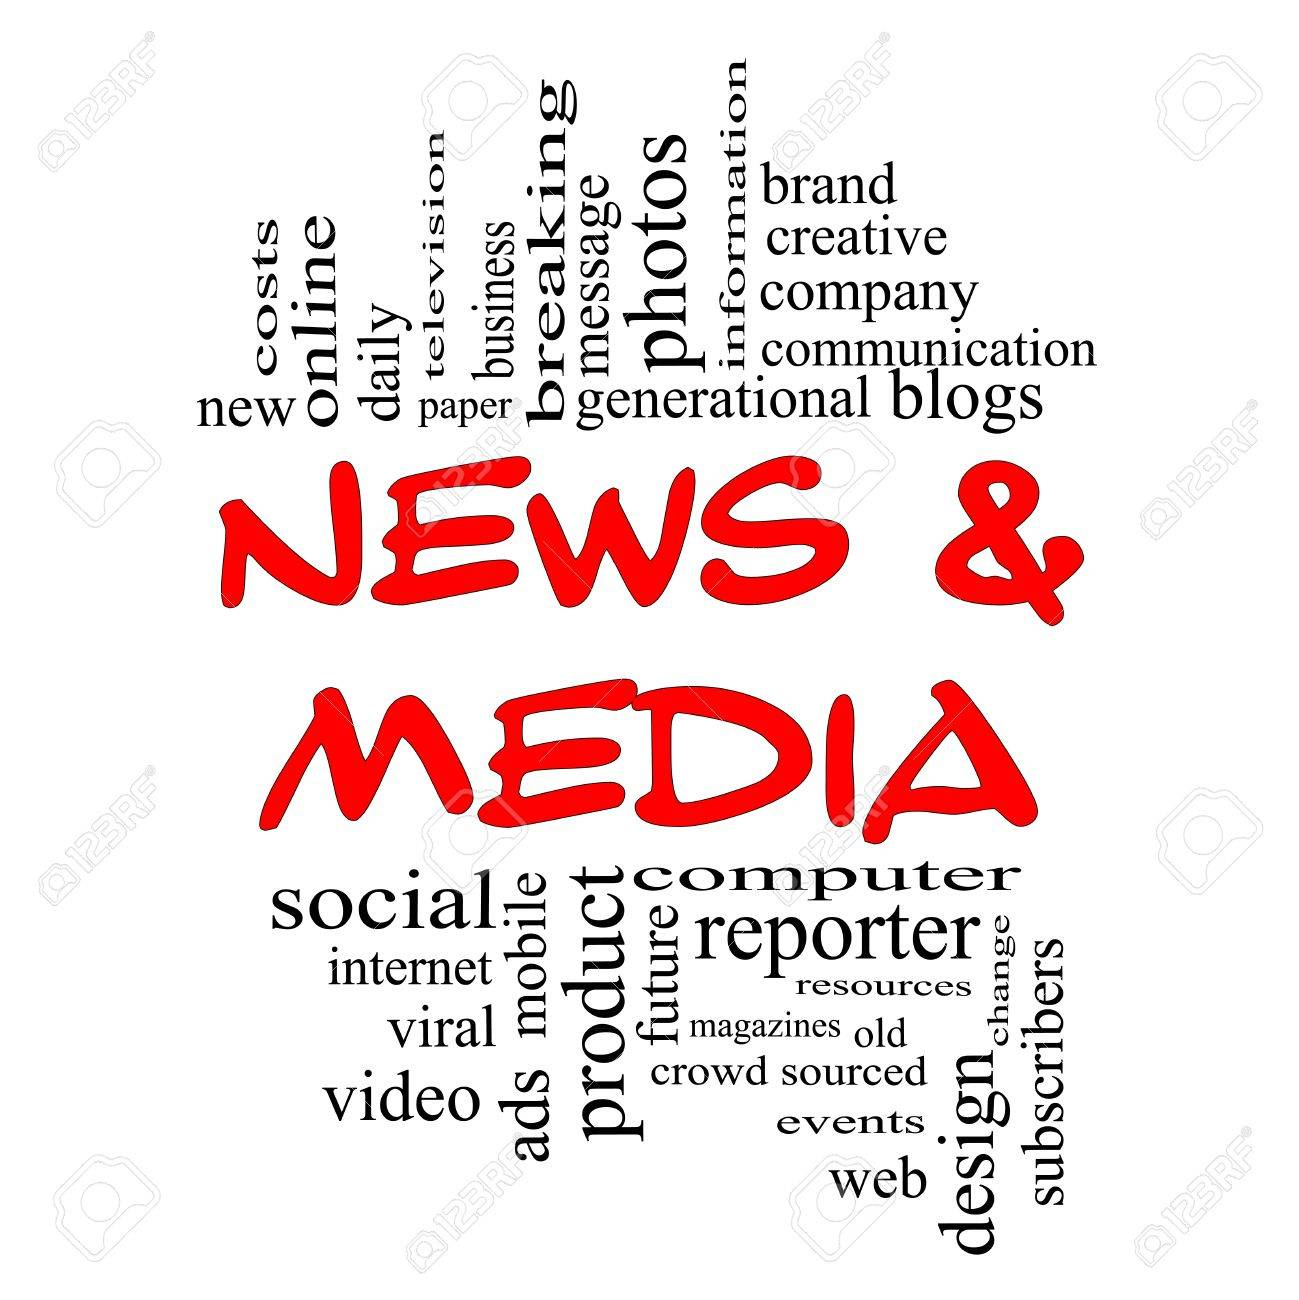 News and Media Word Cloud Concept in red and black letters with great terms such as television, brand, viral, magazines, social, internet, events and more. Stock Photo - 15028345